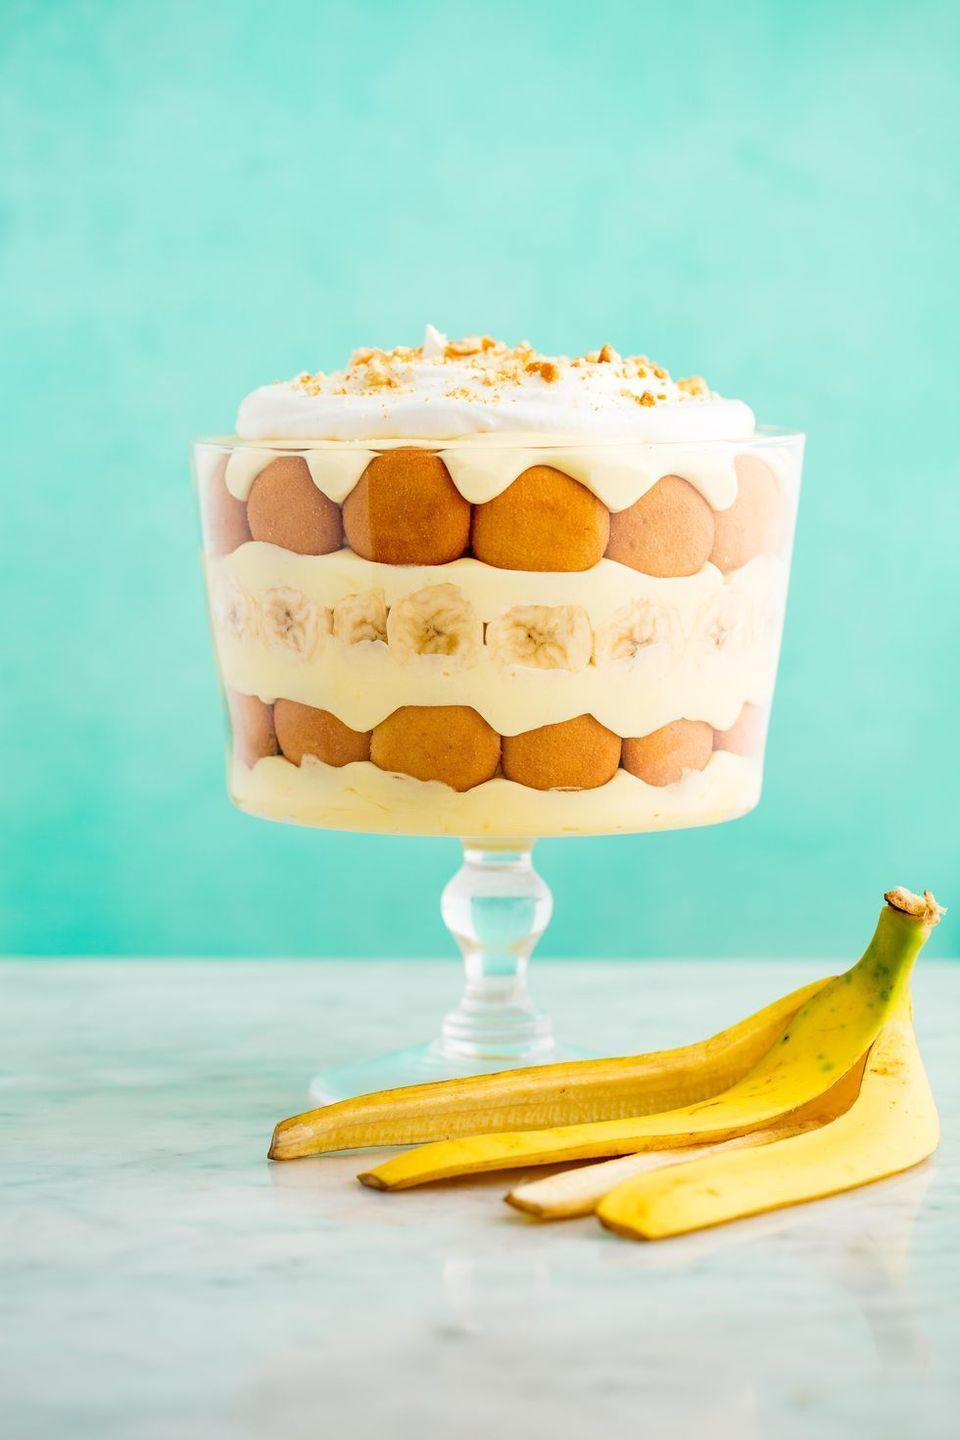 """<p>Making a layered trifle pudding like this isn't difficult at all; it's cascading layers of pudding, whipped cream, bananas, and wafers simply arranged atop each other. It's just as delicious if arranged in individual servings, too.</p><p><a href=""""https://www.delish.com/cooking/recipe-ideas/recipes/a52780/banana-pudding-cheesecake-recipe/"""" rel=""""nofollow noopener"""" target=""""_blank"""" data-ylk=""""slk:Get the recipe from Delish »"""" class=""""link rapid-noclick-resp""""><em>Get the recipe from Delish »</em></a></p>"""